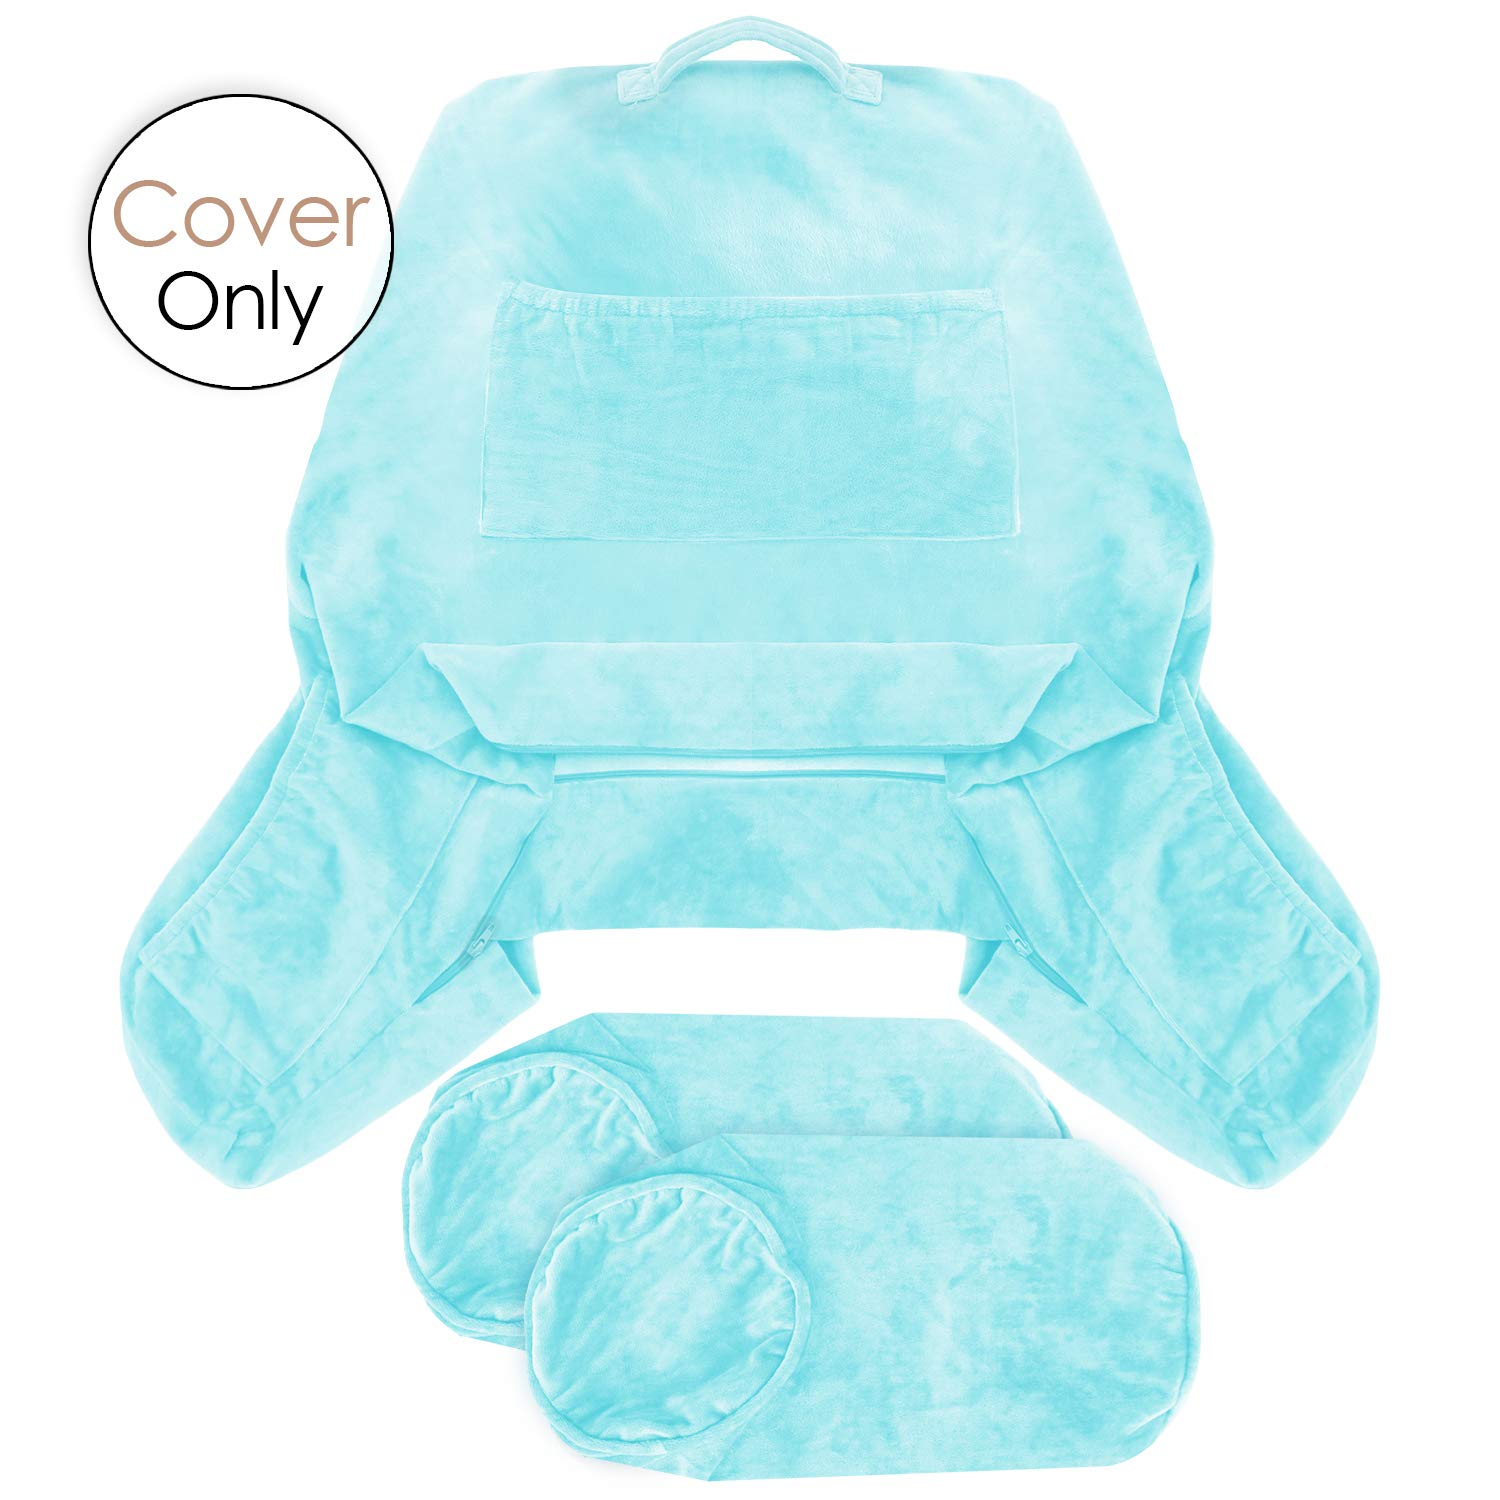 Nestl Reading Pillow Covers, Extra Large Bed Rest Pillow with Arms Cover - Detachable Neck Roll & Lumbar Support Pillow Cover - Removable Covers Ligth Baby Blue